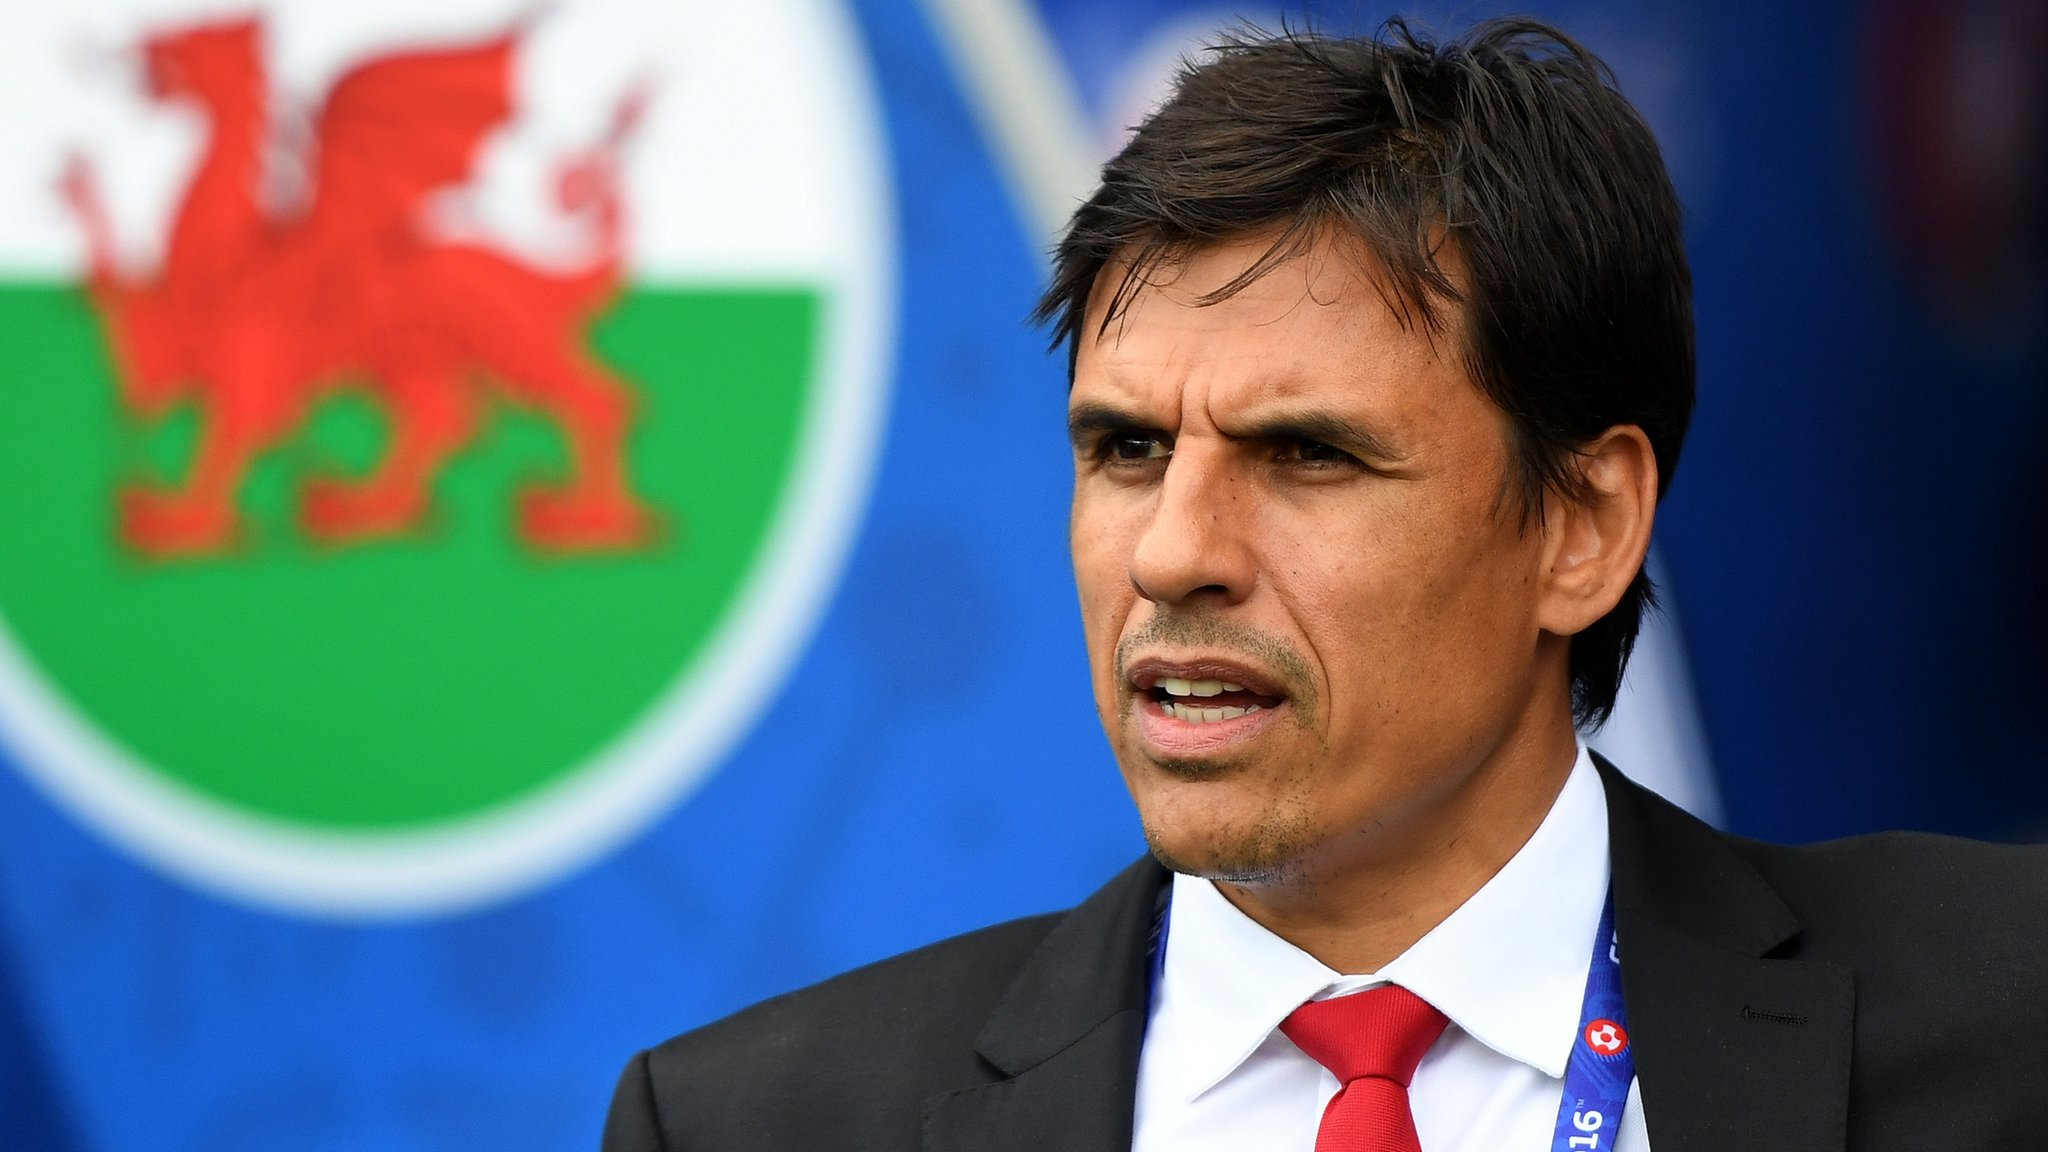 Next Wales boss will be 'foreign possibly, but definitely not English'